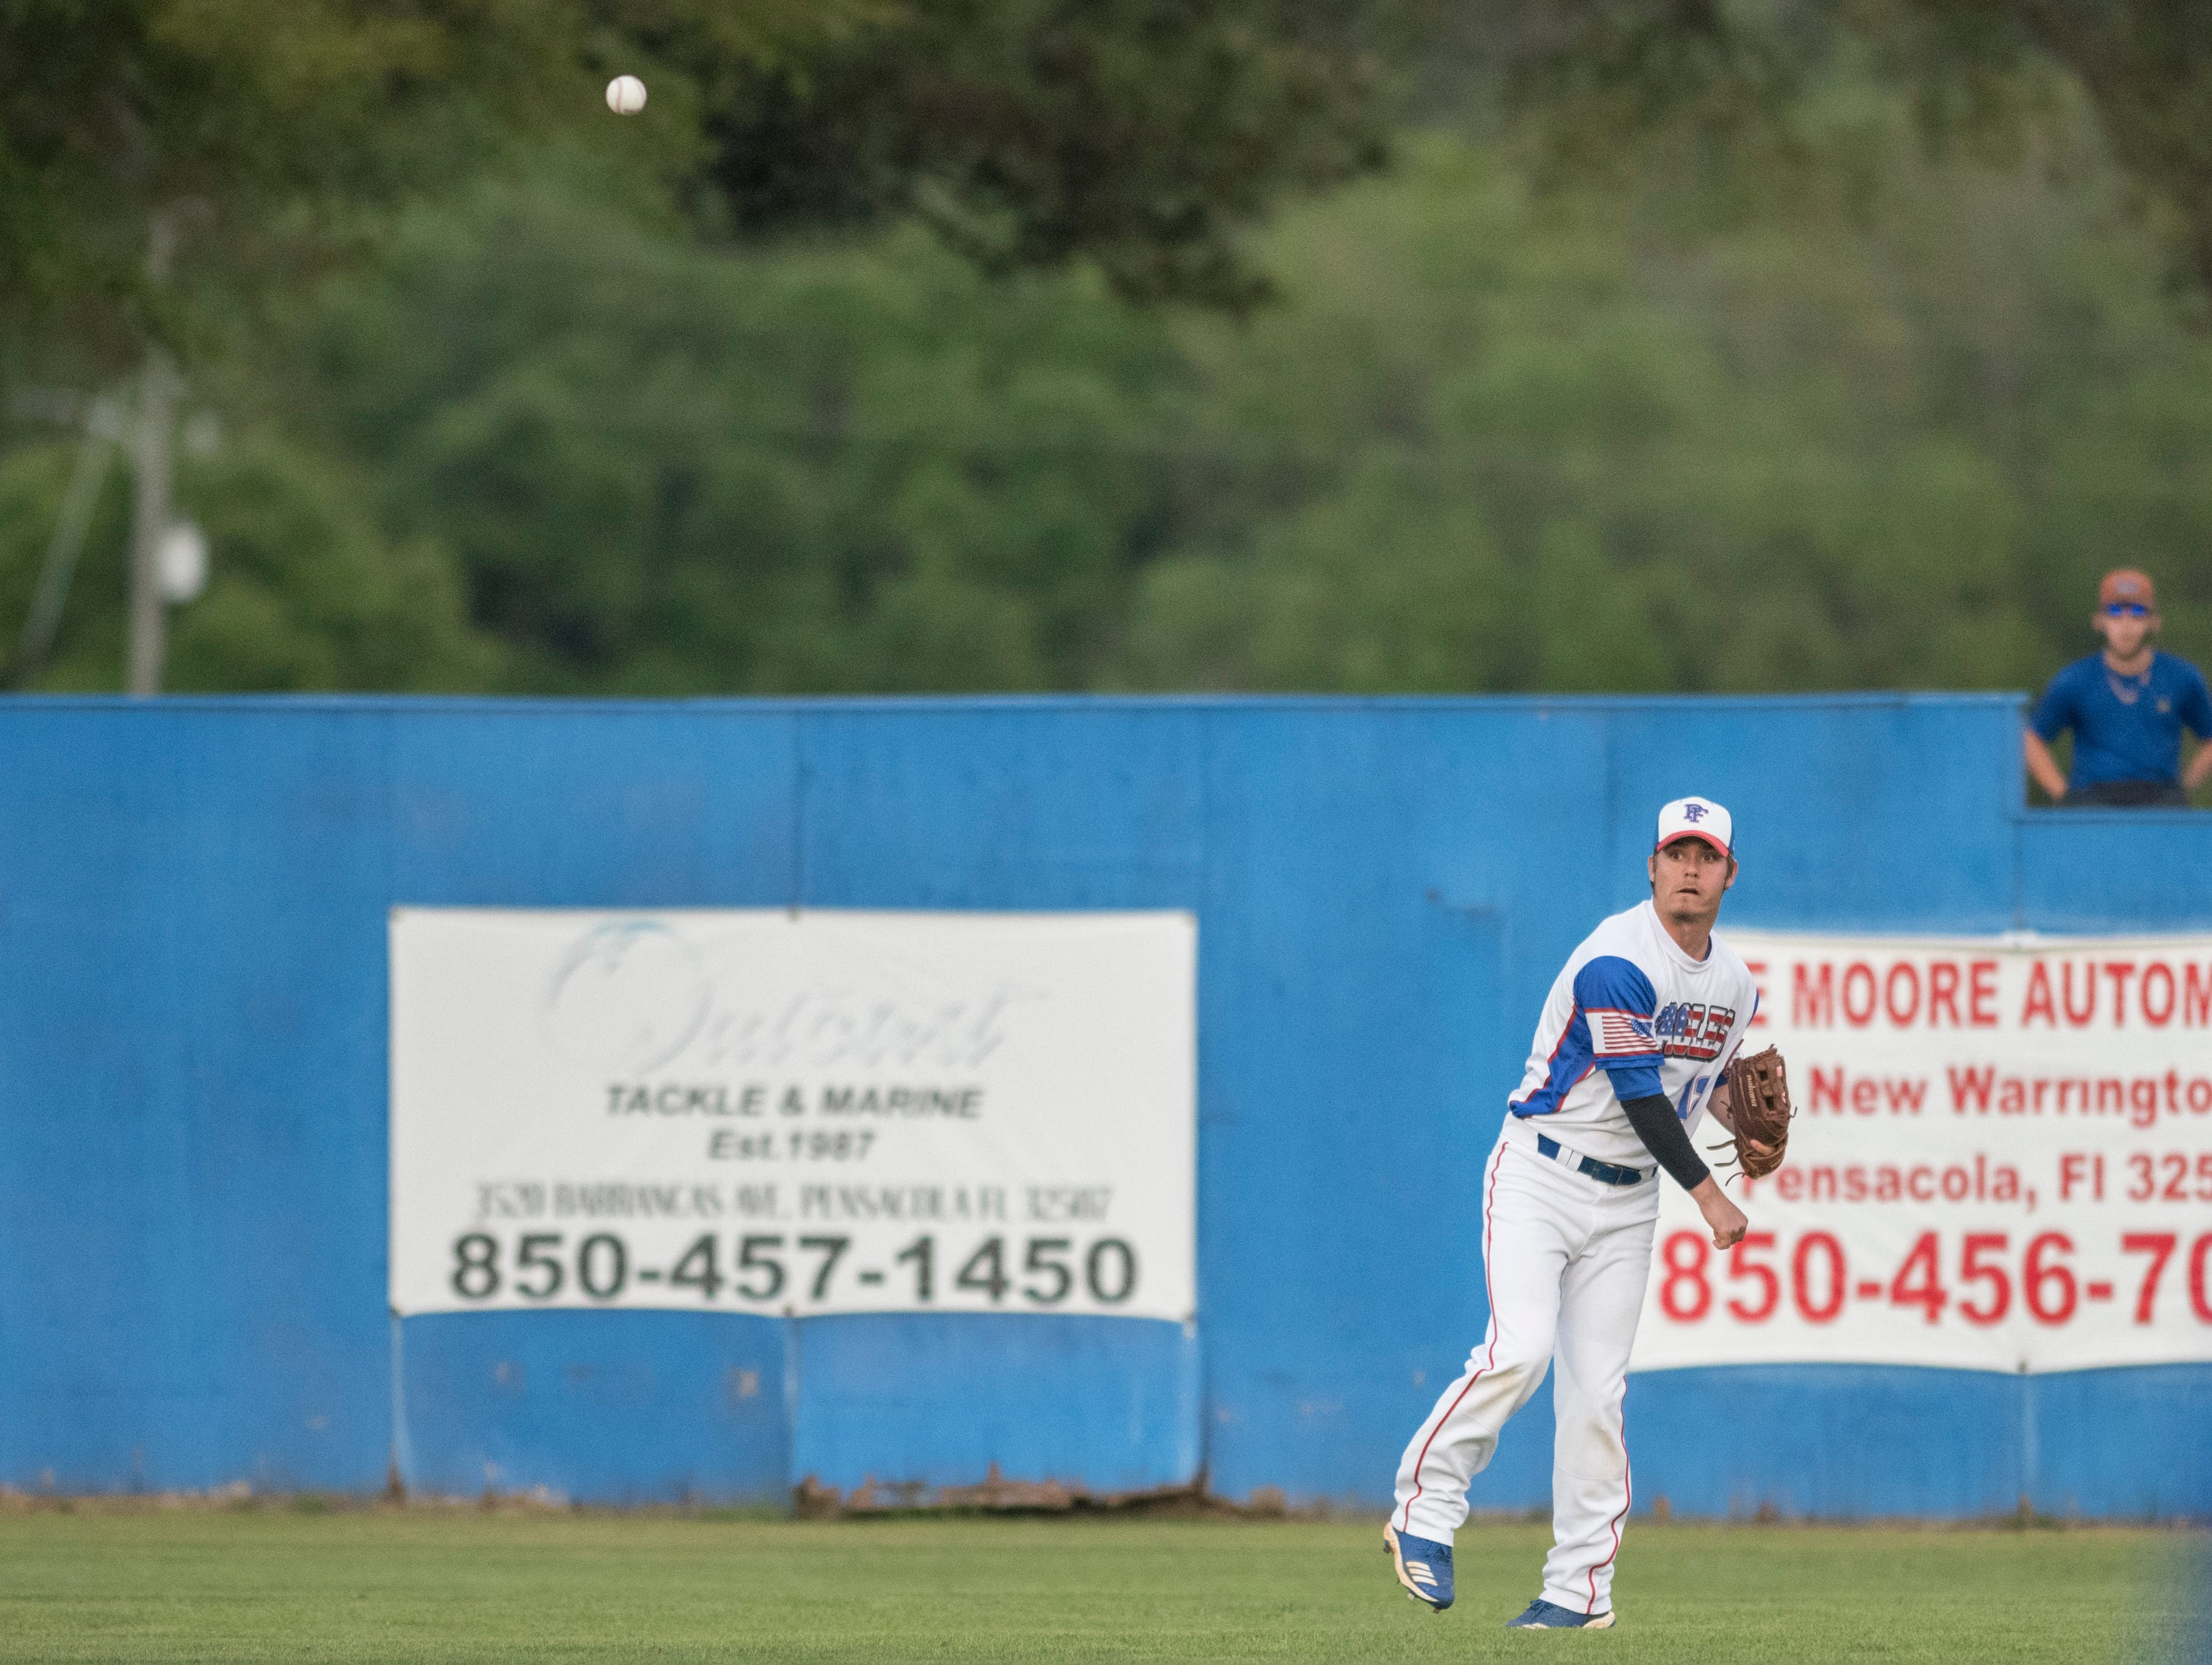 Nolan Rigby (12) tosses the ball back into the infield after making the play during the Christian Educational Consortium vs Pine Forest baseball game at Pine Forest High School in Pensacola on Wednesday, April 3, 2019.